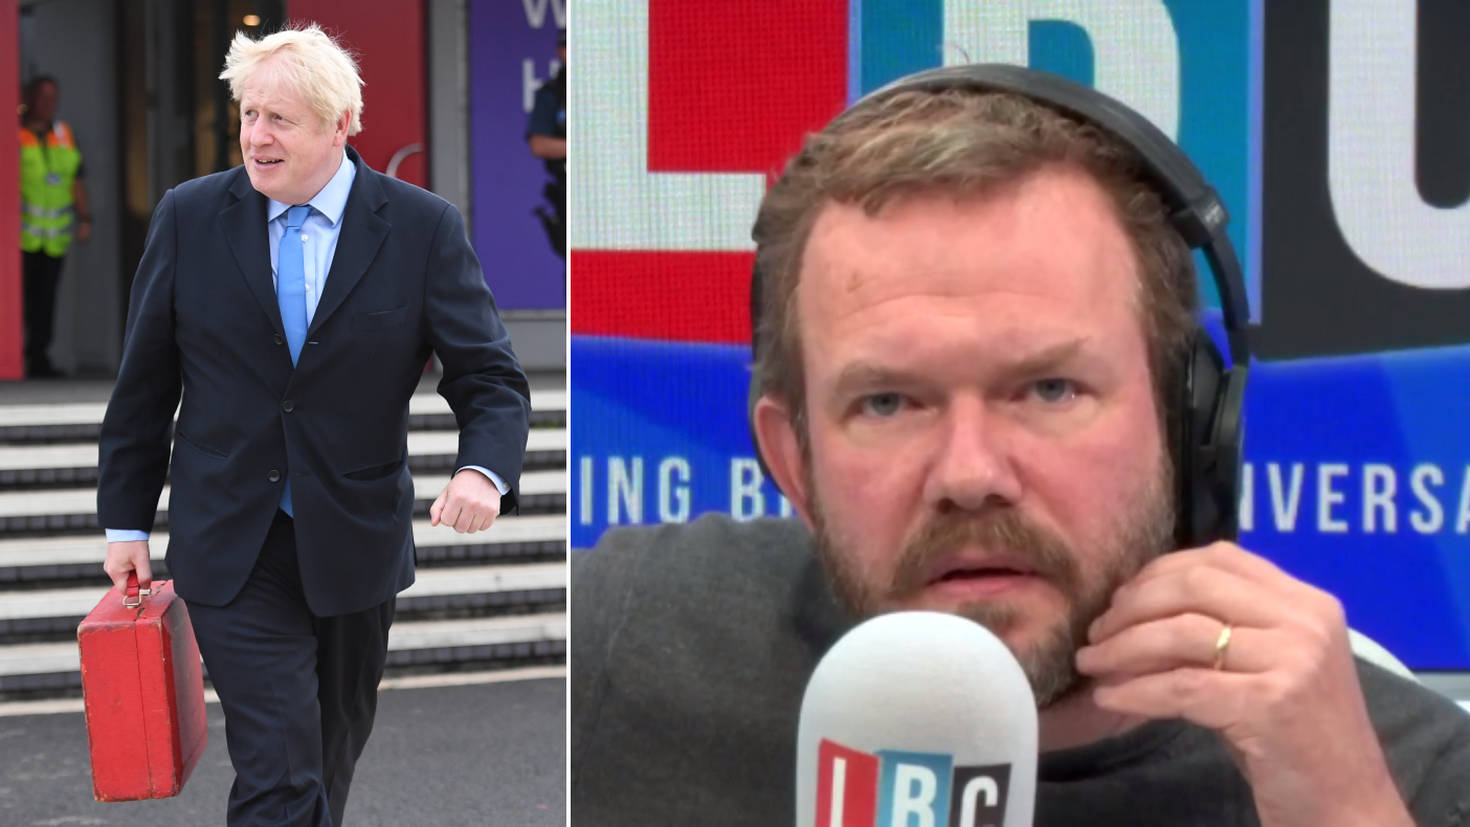 James O'Brien's Powerful Monologue On Tribalism In Politics